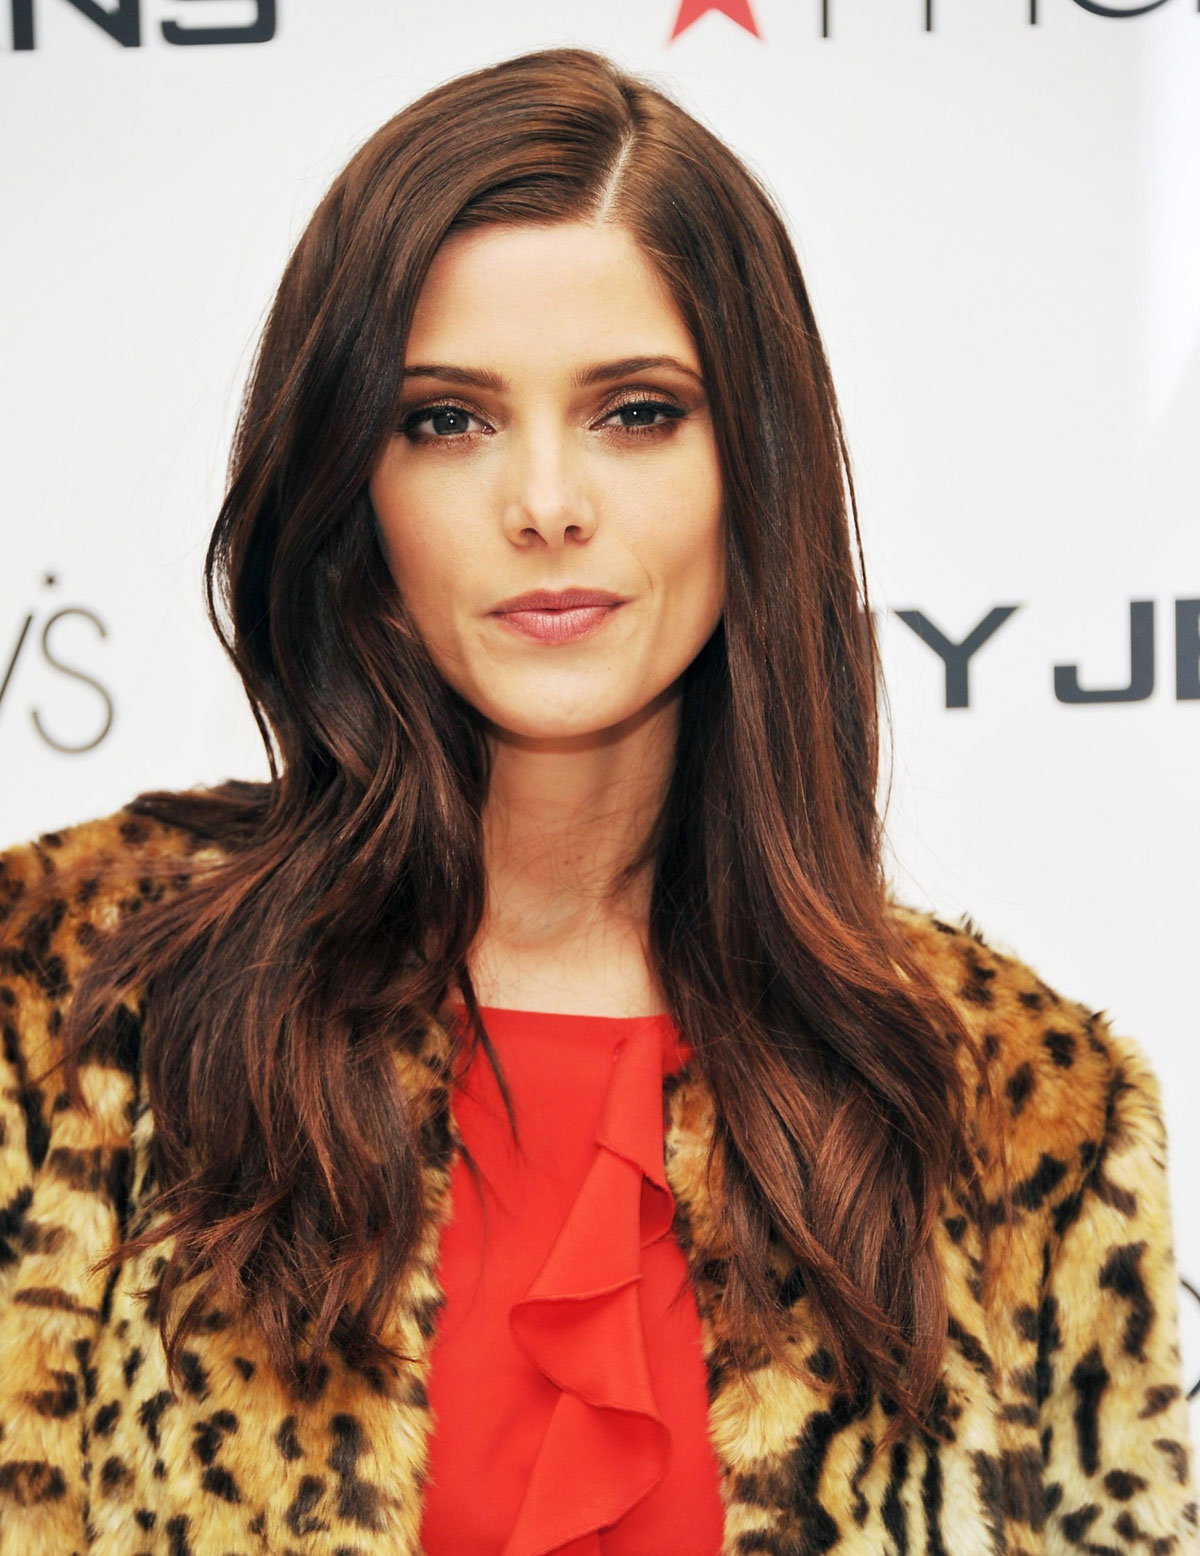 ASHLEY GREENE at Macy's Herald Square